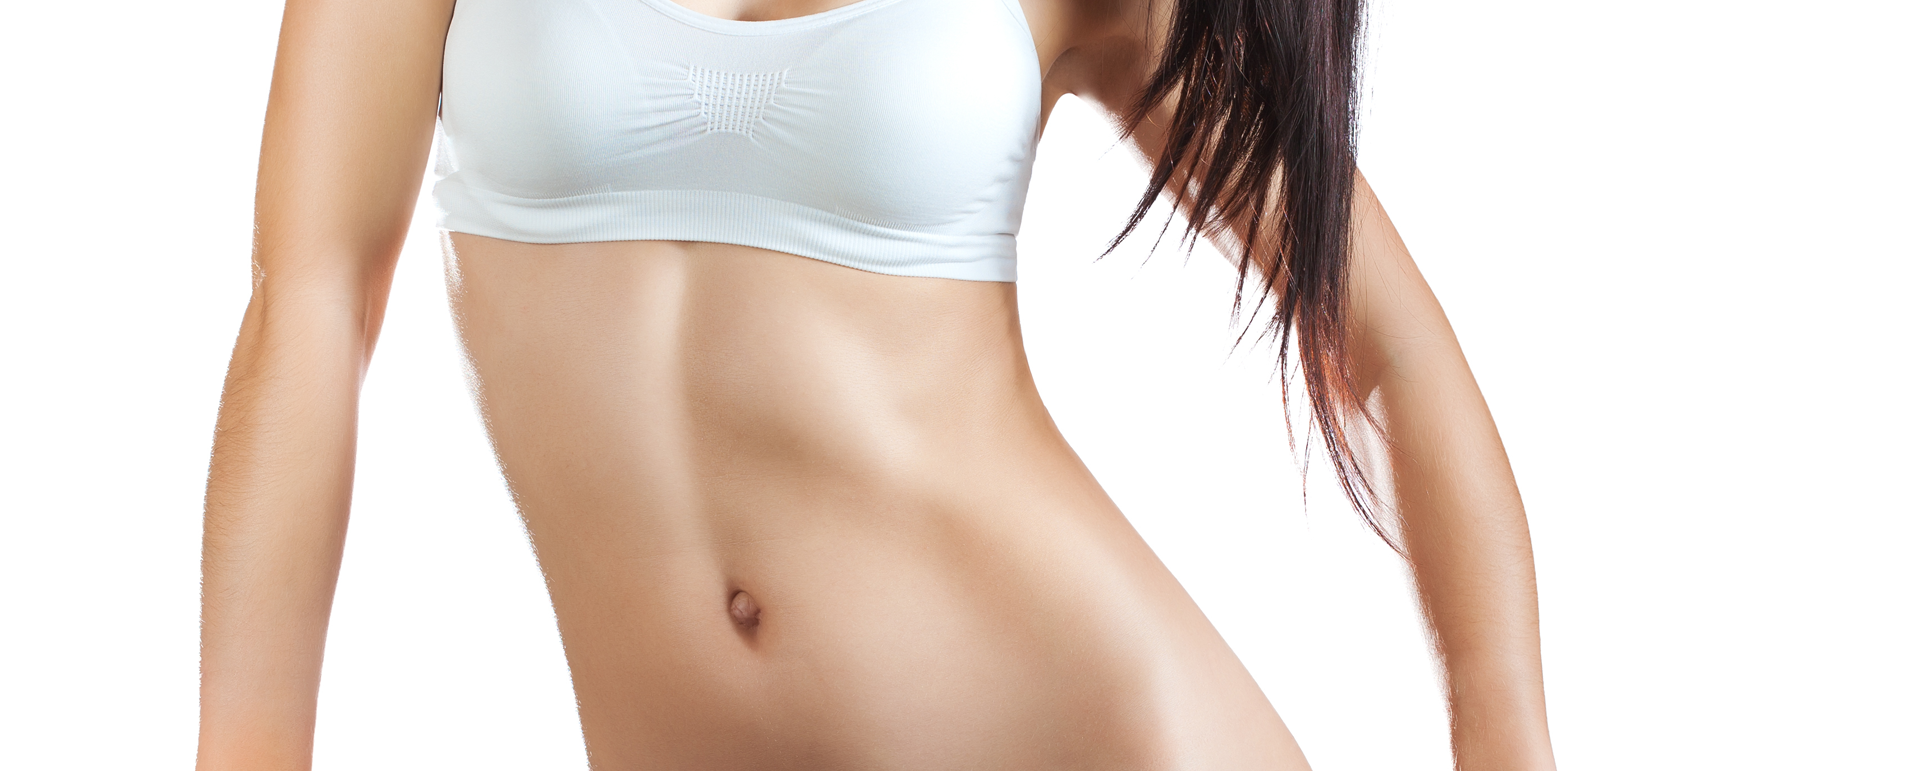 How To Lose Weight At 145 Pounds